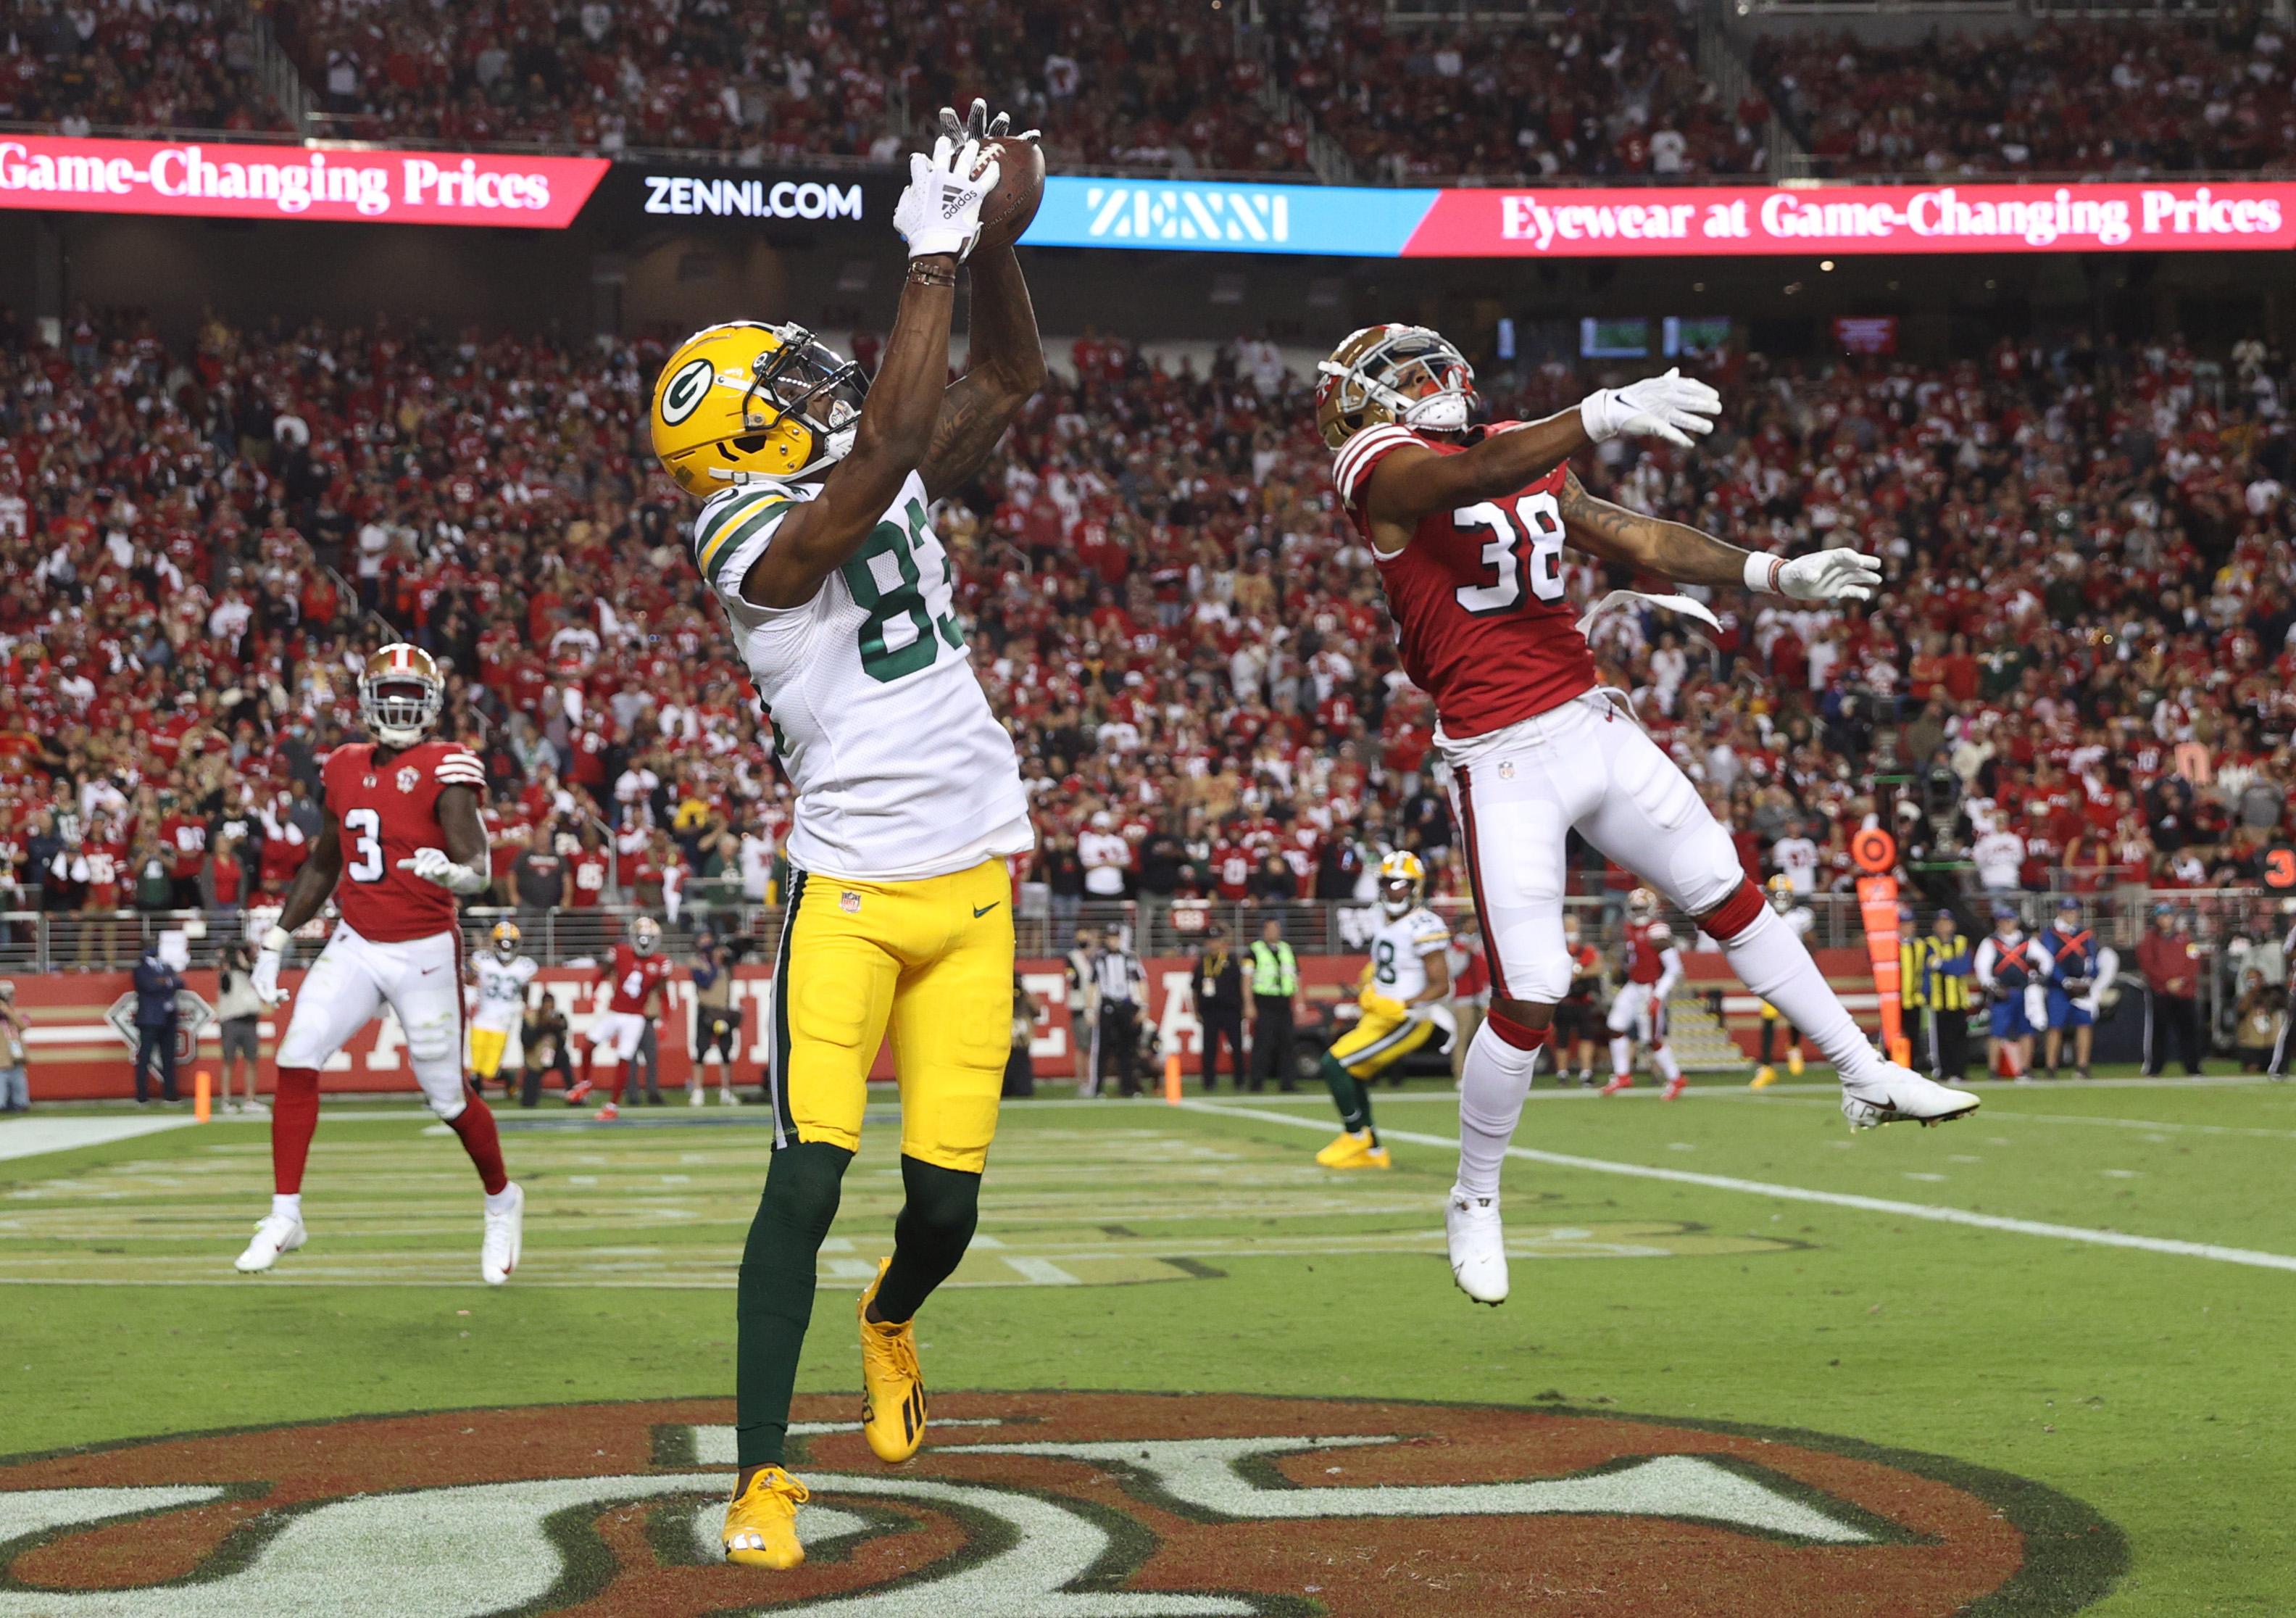 Marquez Valdes-Scantling #83 of the Green Bay Packers catches a touchdown pass during the second half against the San Francisco 49ers in the game at Levi's Stadium on September 26, 2021 in Santa Clara, California.